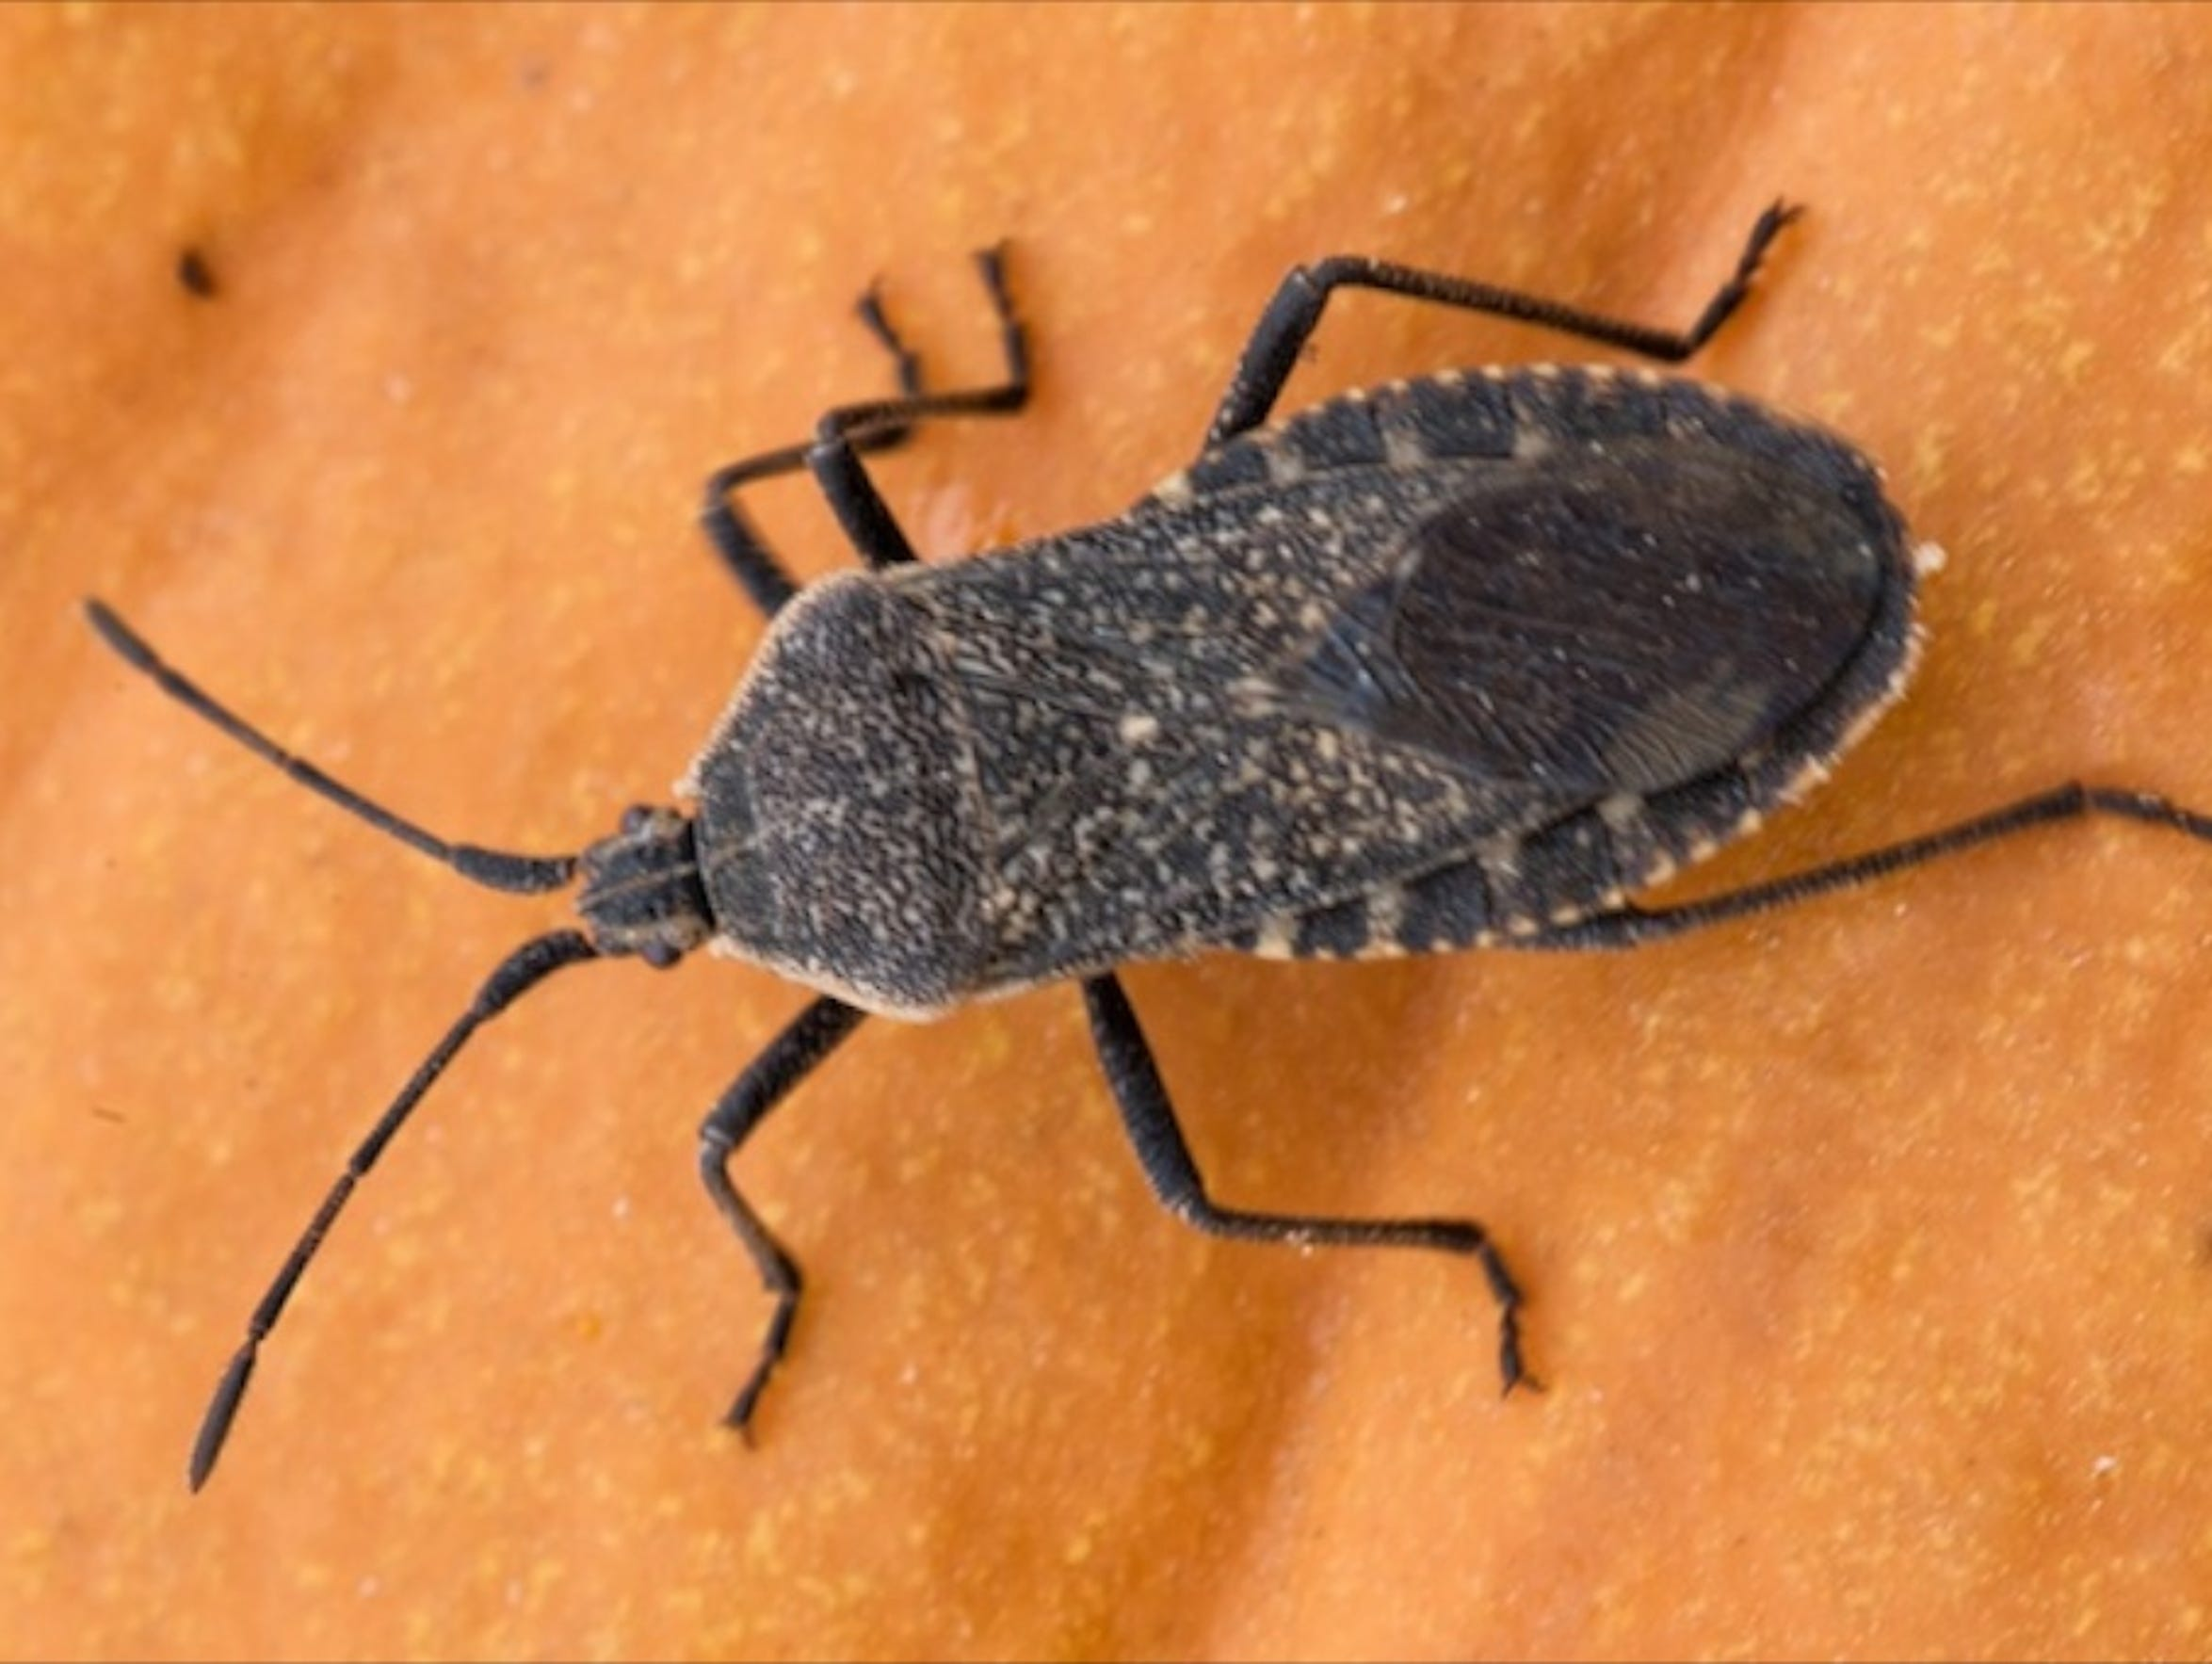 This is a squash bug, which can be mistaken for a kissing